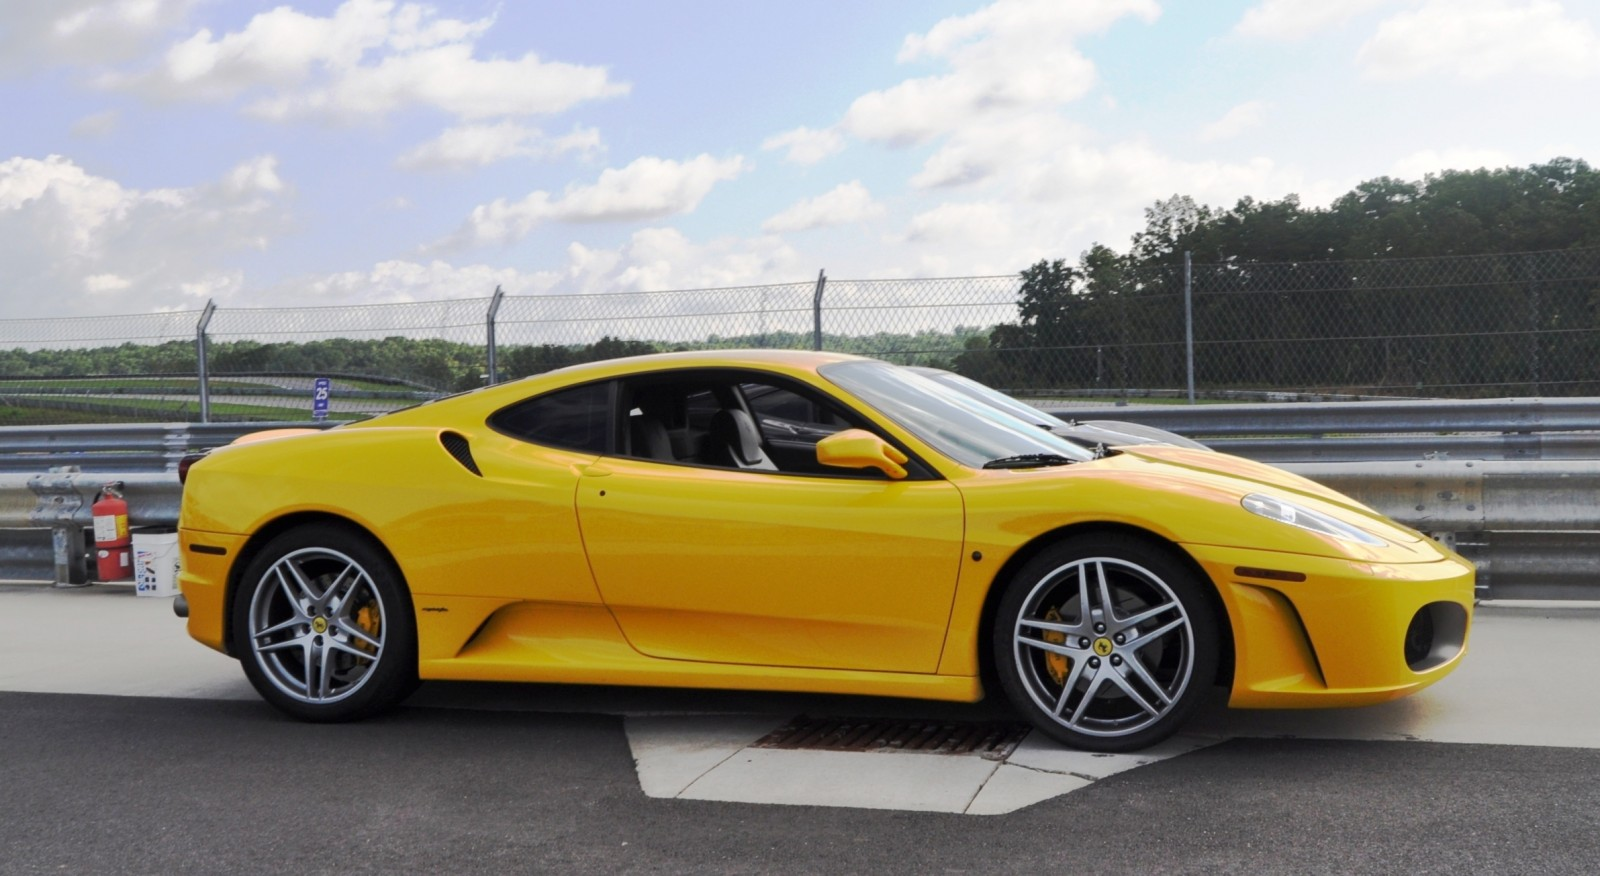 Beating the Supercar Paradox - 2007 Ferrari F430 at Velocity Motorsports Supercar Track Drive 5